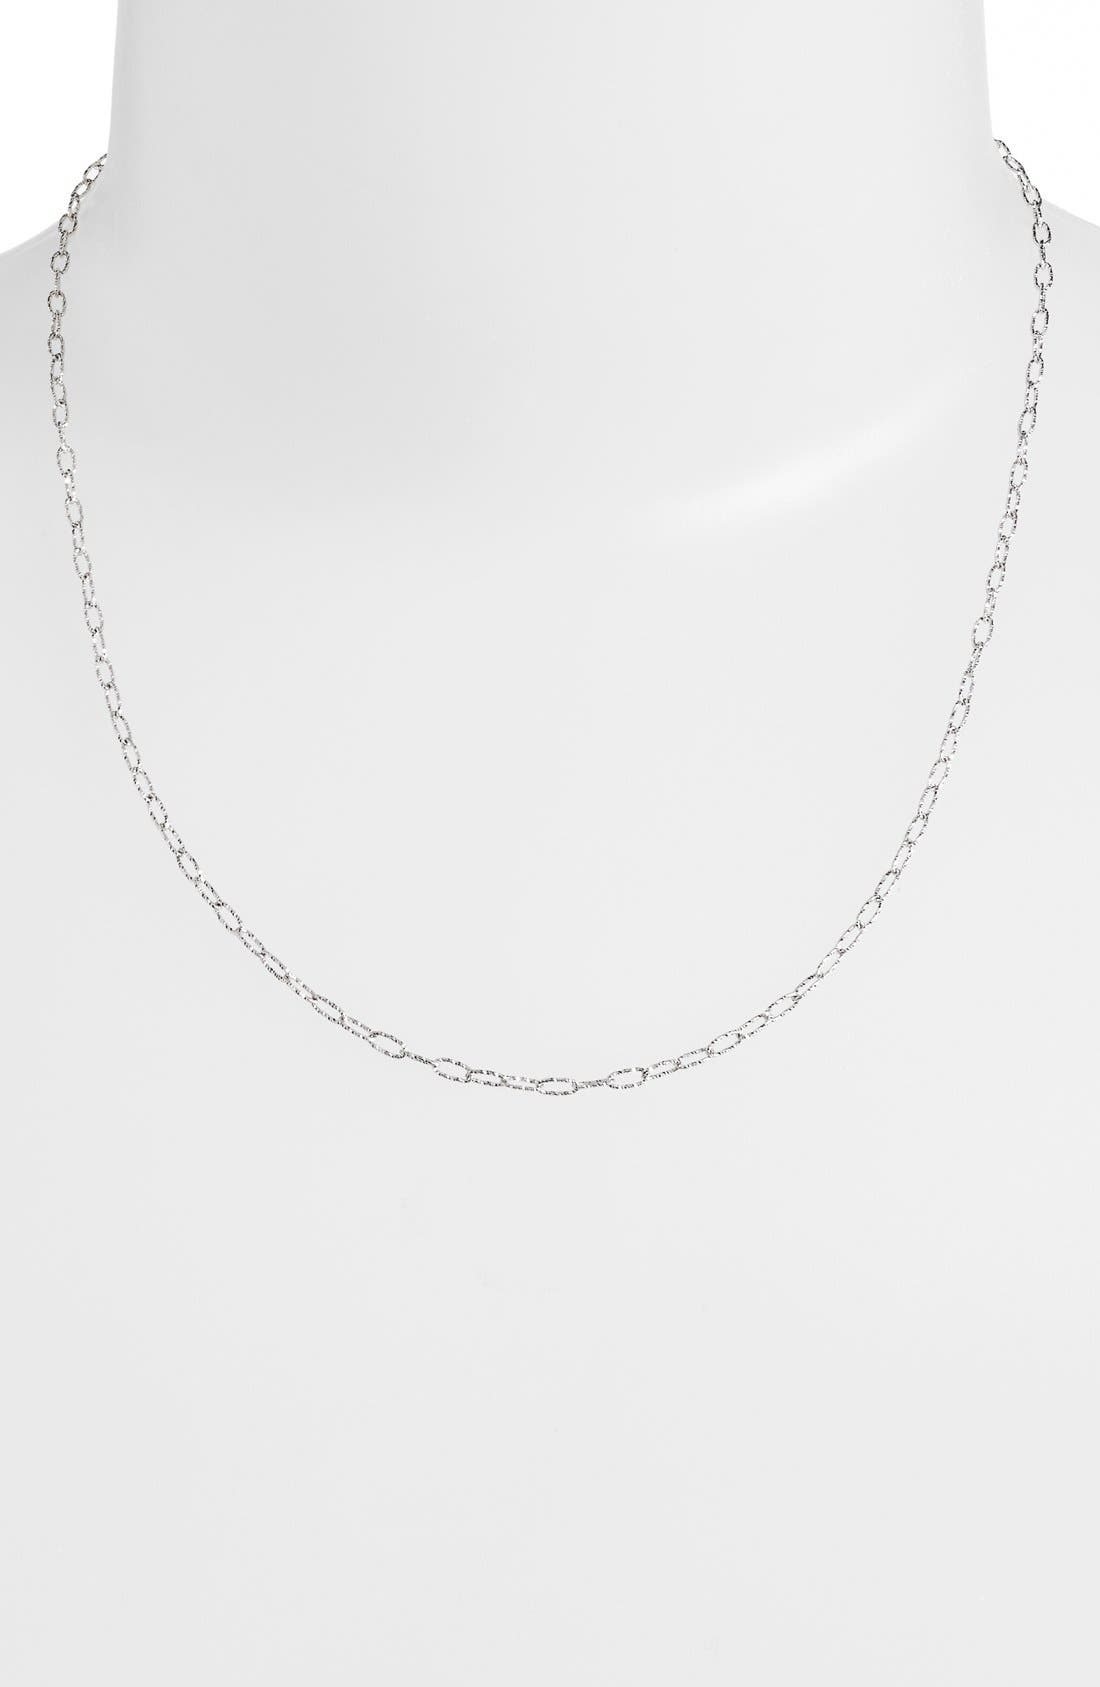 Textured Chain Necklace,                             Main thumbnail 1, color,                             White Gold